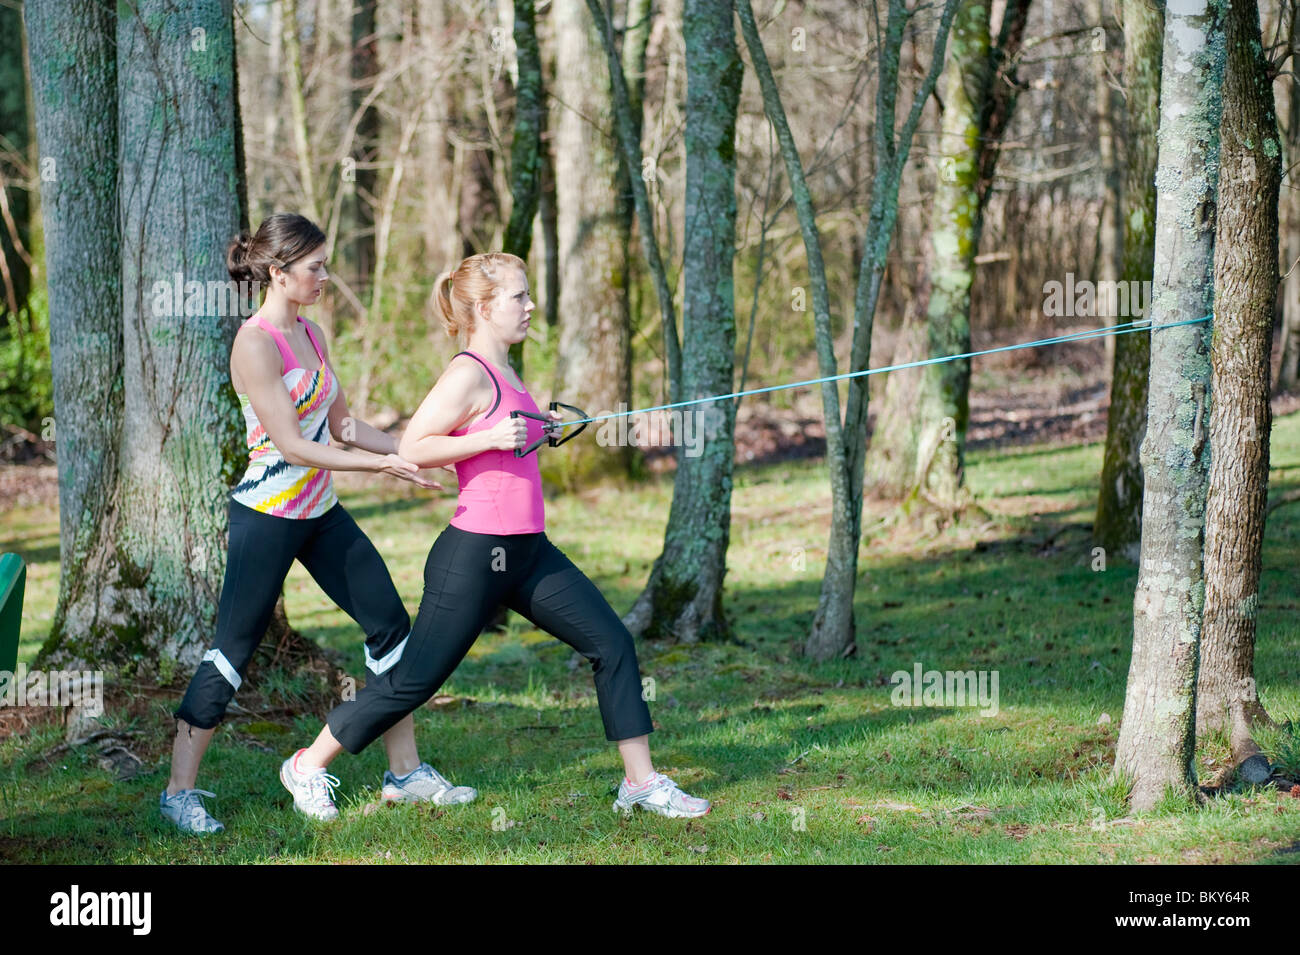 Two women in their mid-20's working out  outdoors. - Stock Image